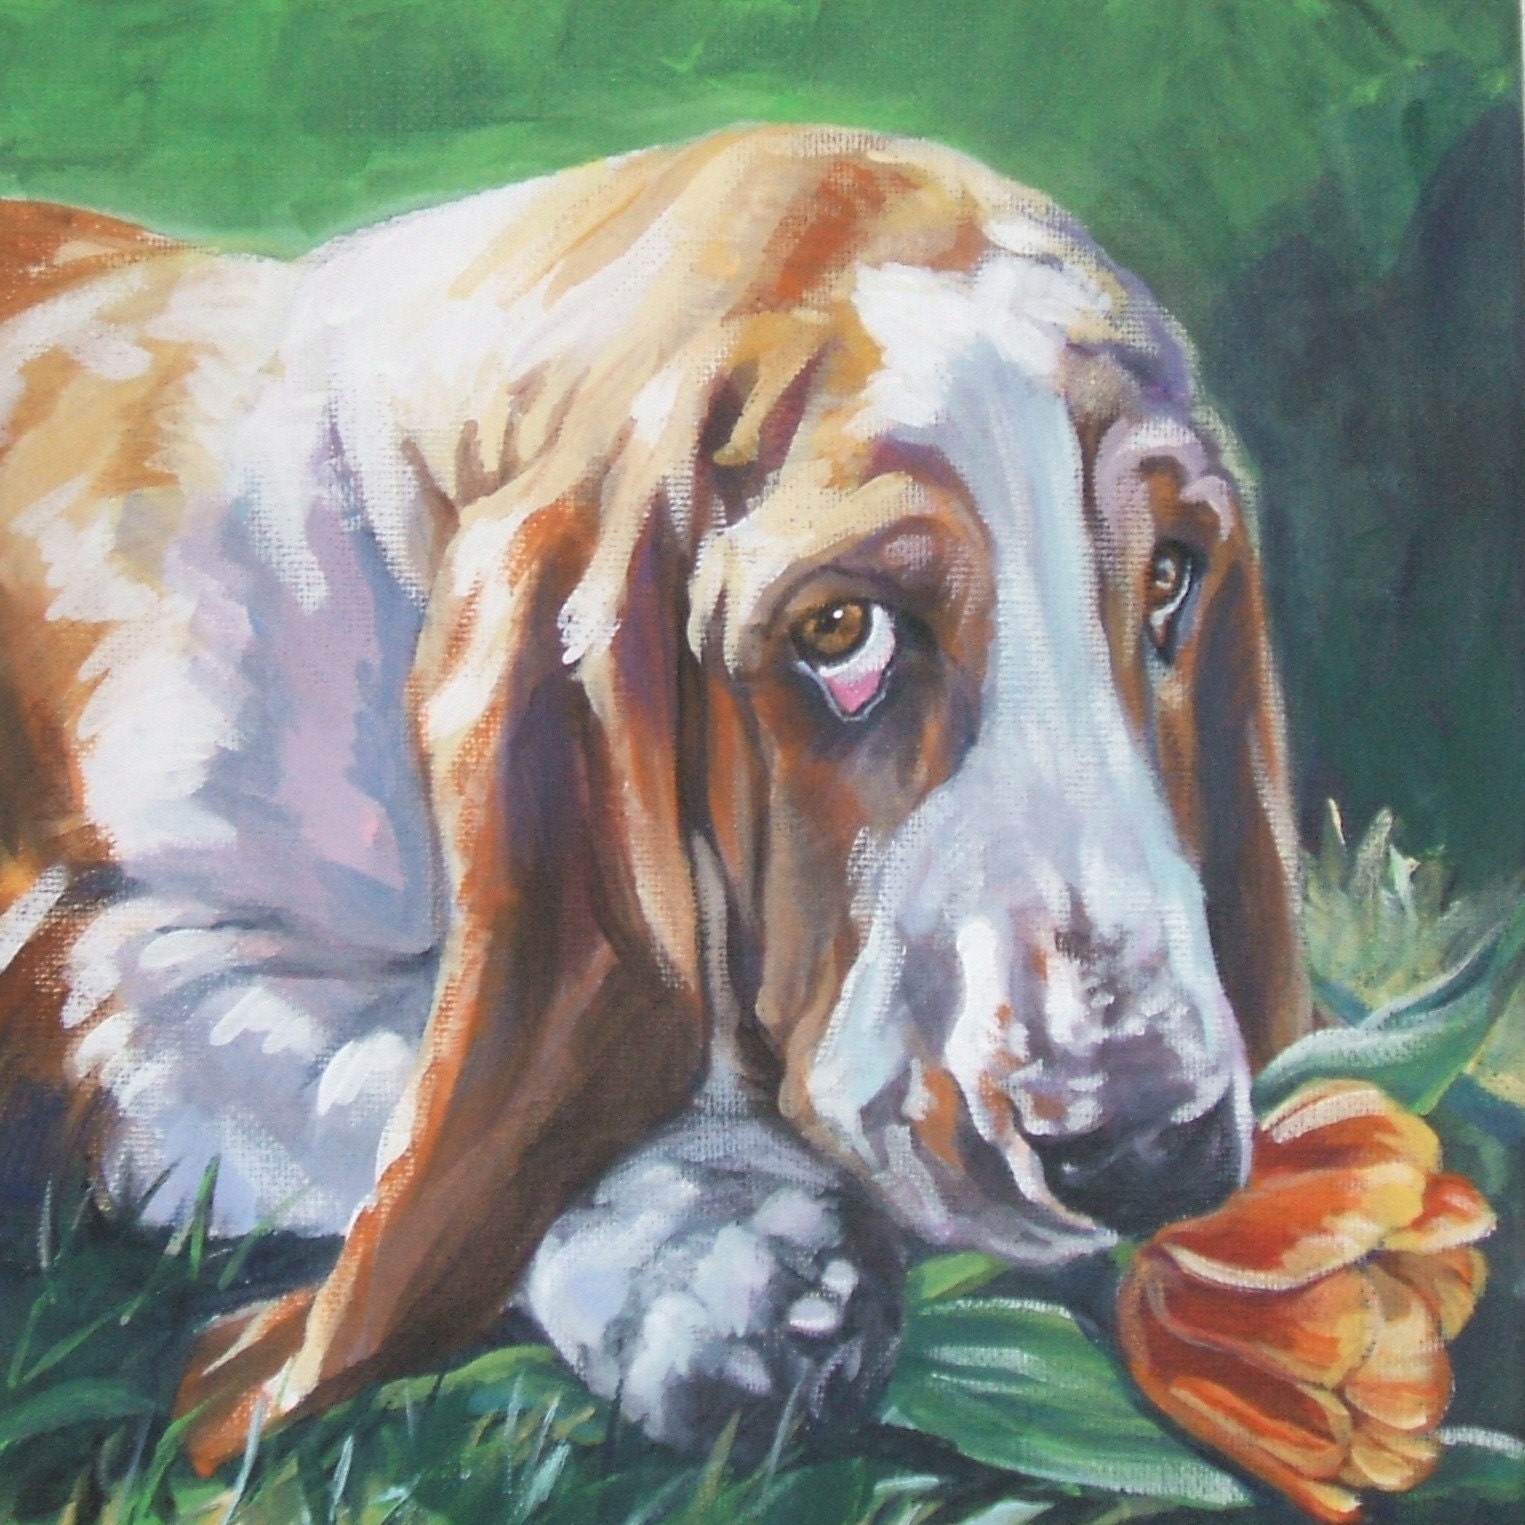 Basset hound dog art portrait canvas print of lashepard dog for Dog painting artist